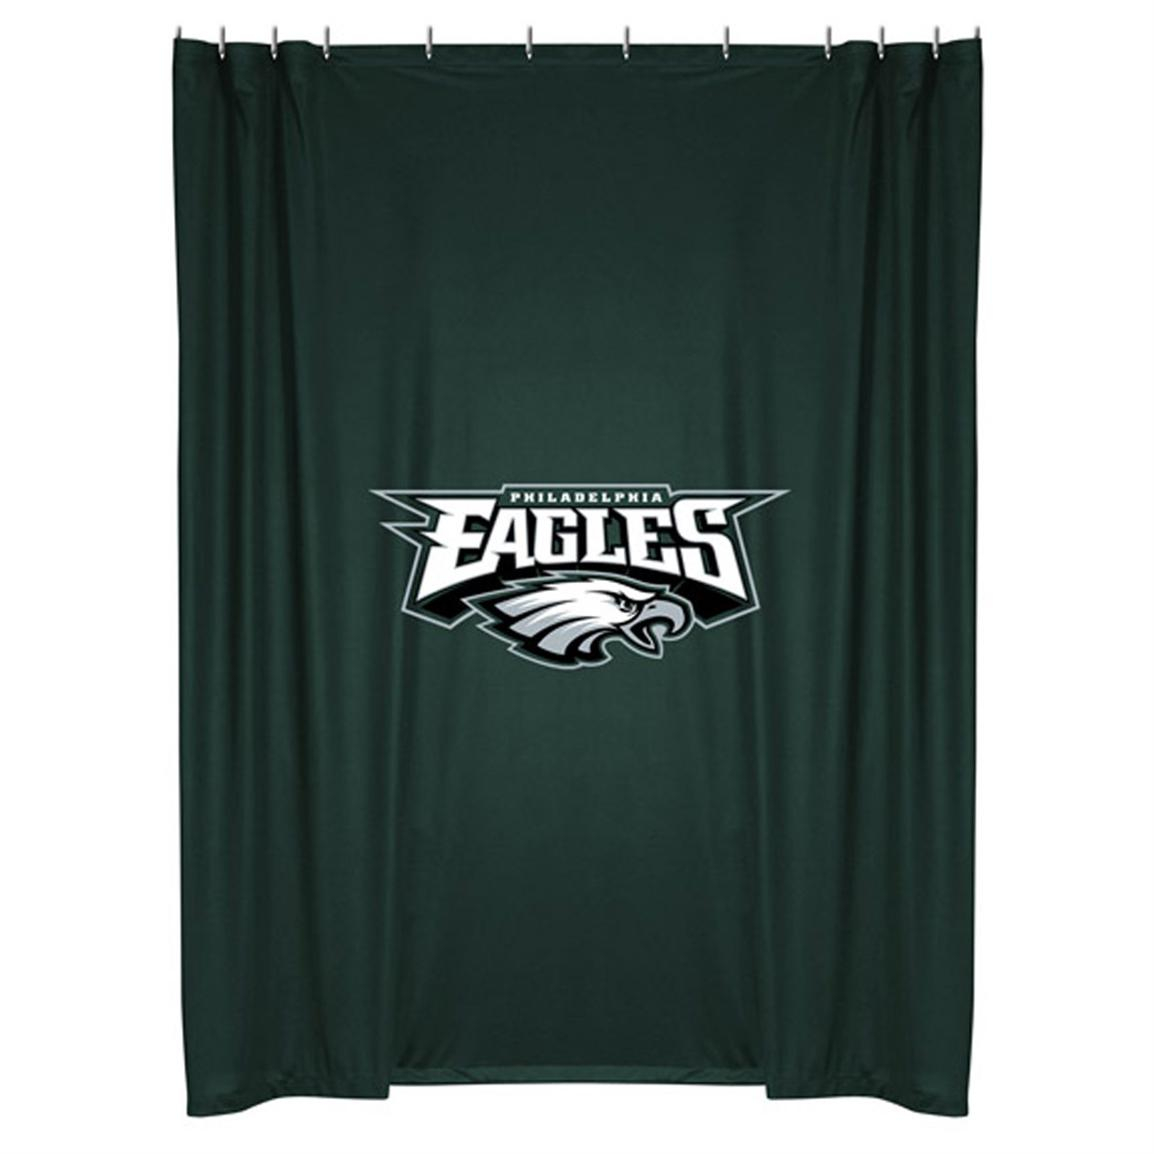 Sports Coverage Nfl Team Shower Curtain 218098 Bath At within proportions 1154 X 1154